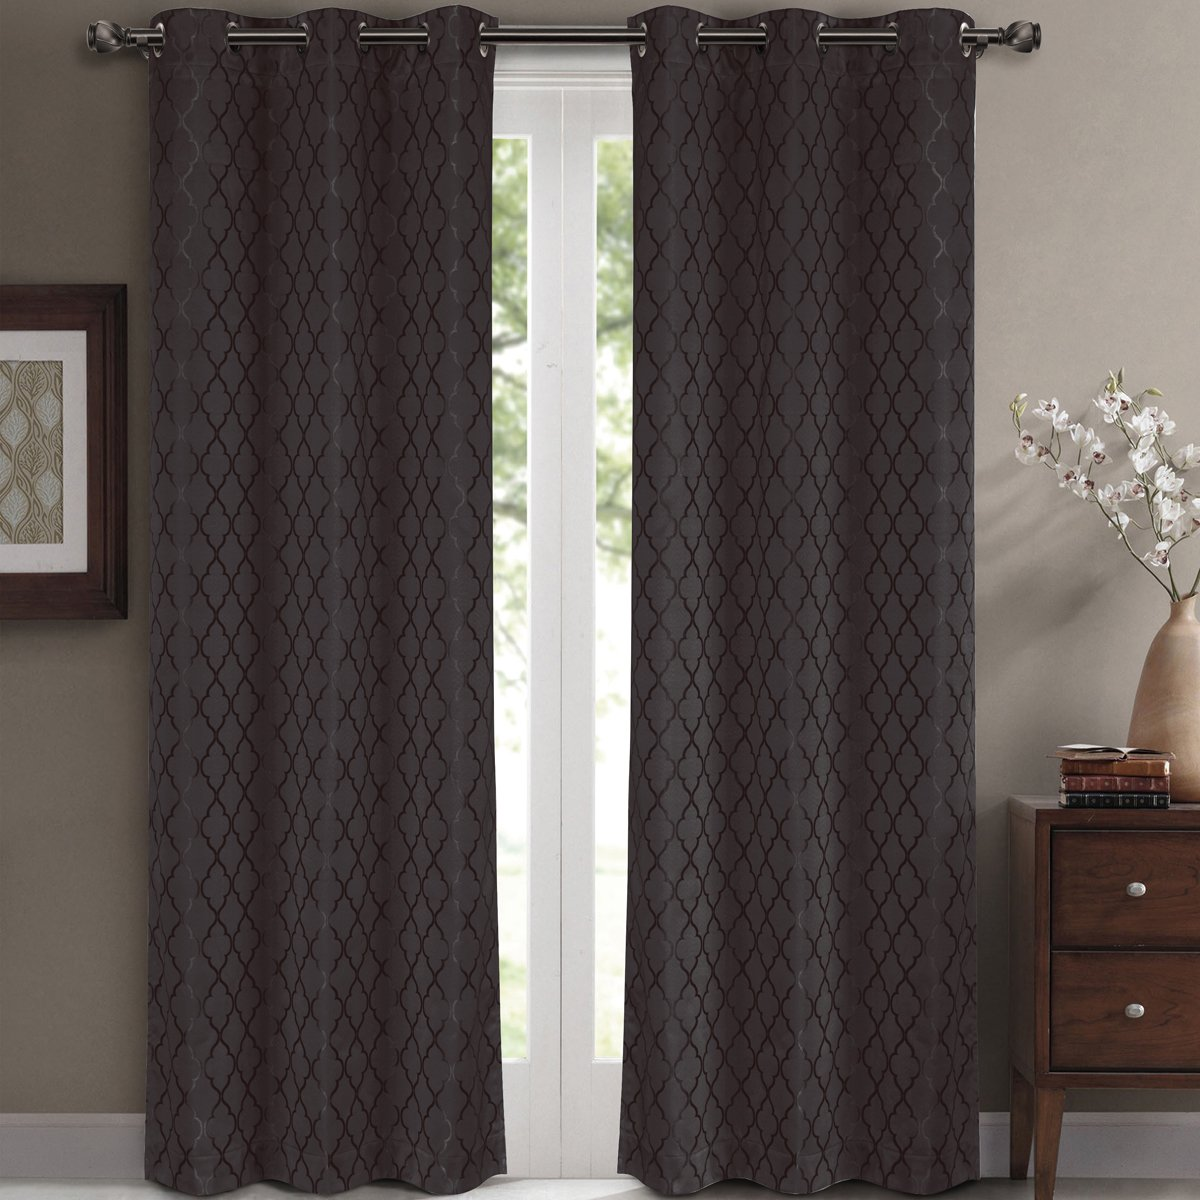 """Pair of Two Top Grommet Blackout Jacquard Curtain Panels, Triple-Pass Foam Back Layer, Elegant and Contemporary Willow Blackout Panels, Charcoal, Set of Two 42"""" by 63"""" Panels (84"""" by 63"""" Pair)"""